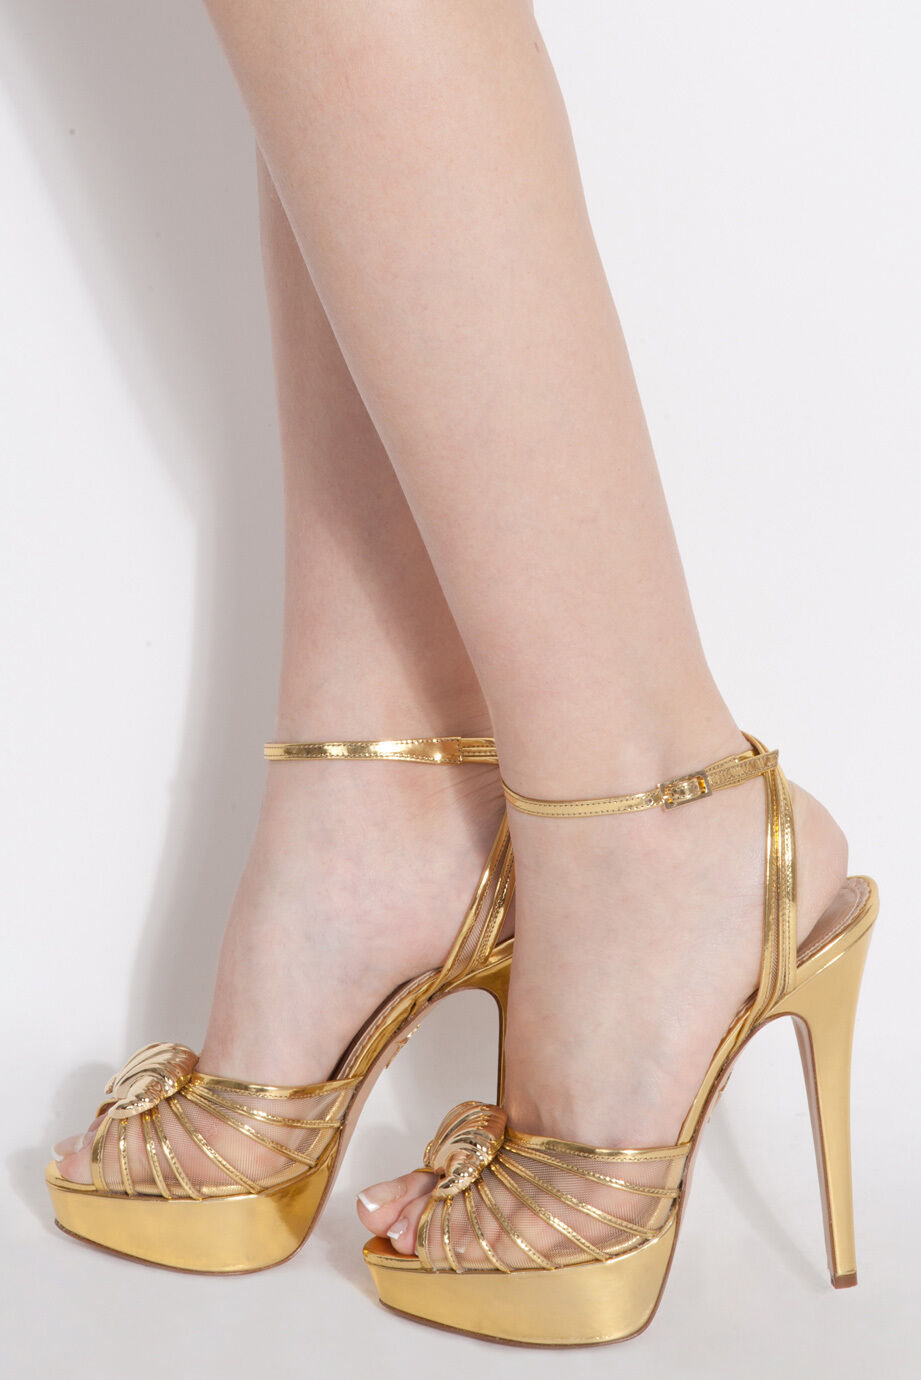 995 New Charlotte Olympia Croissant Mettalic gold Platform Sandals shoes 35 39.